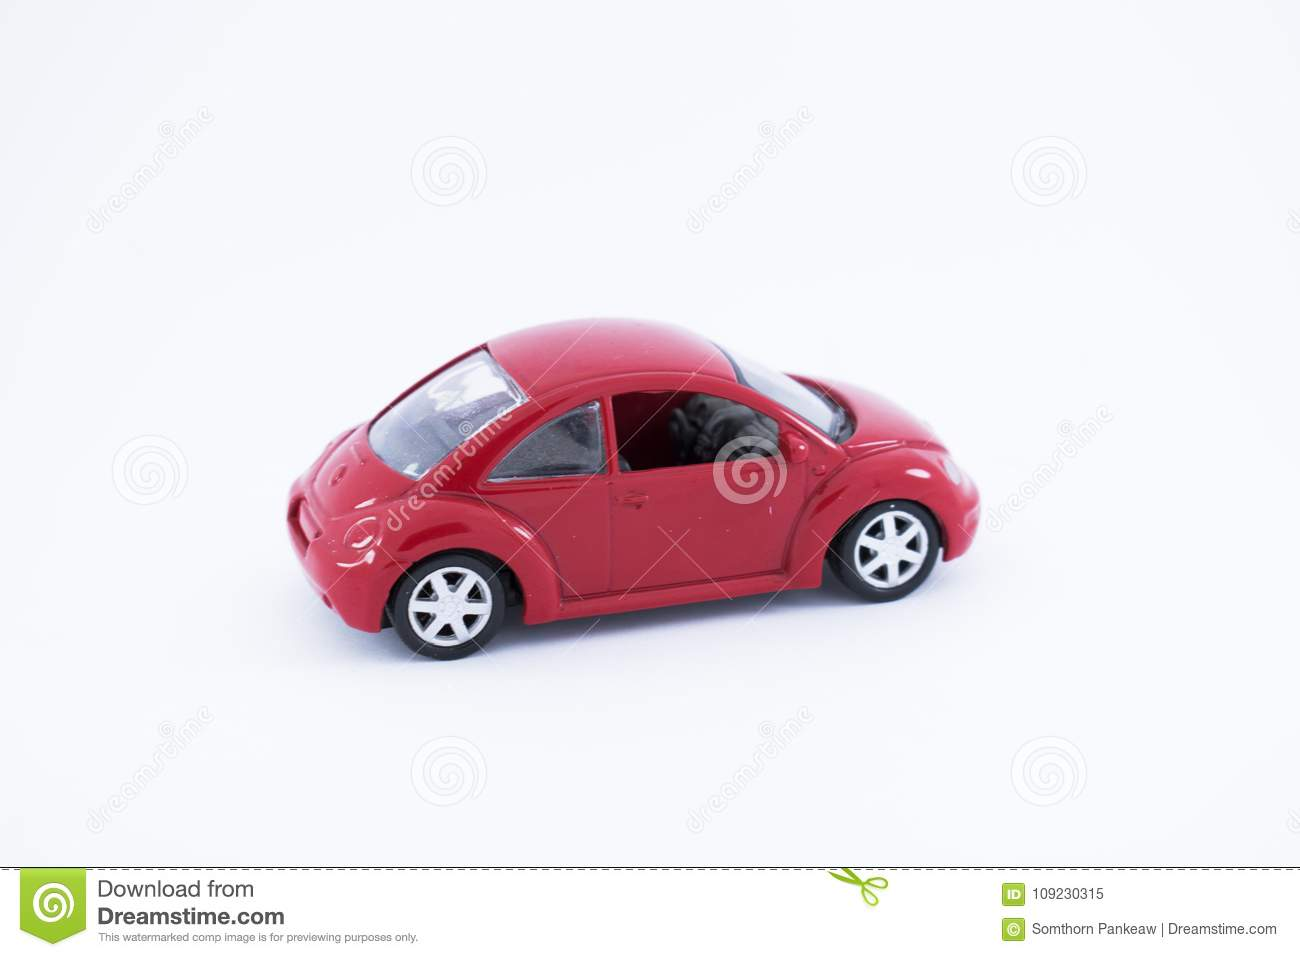 Rood Toy Car met witte achtergrond